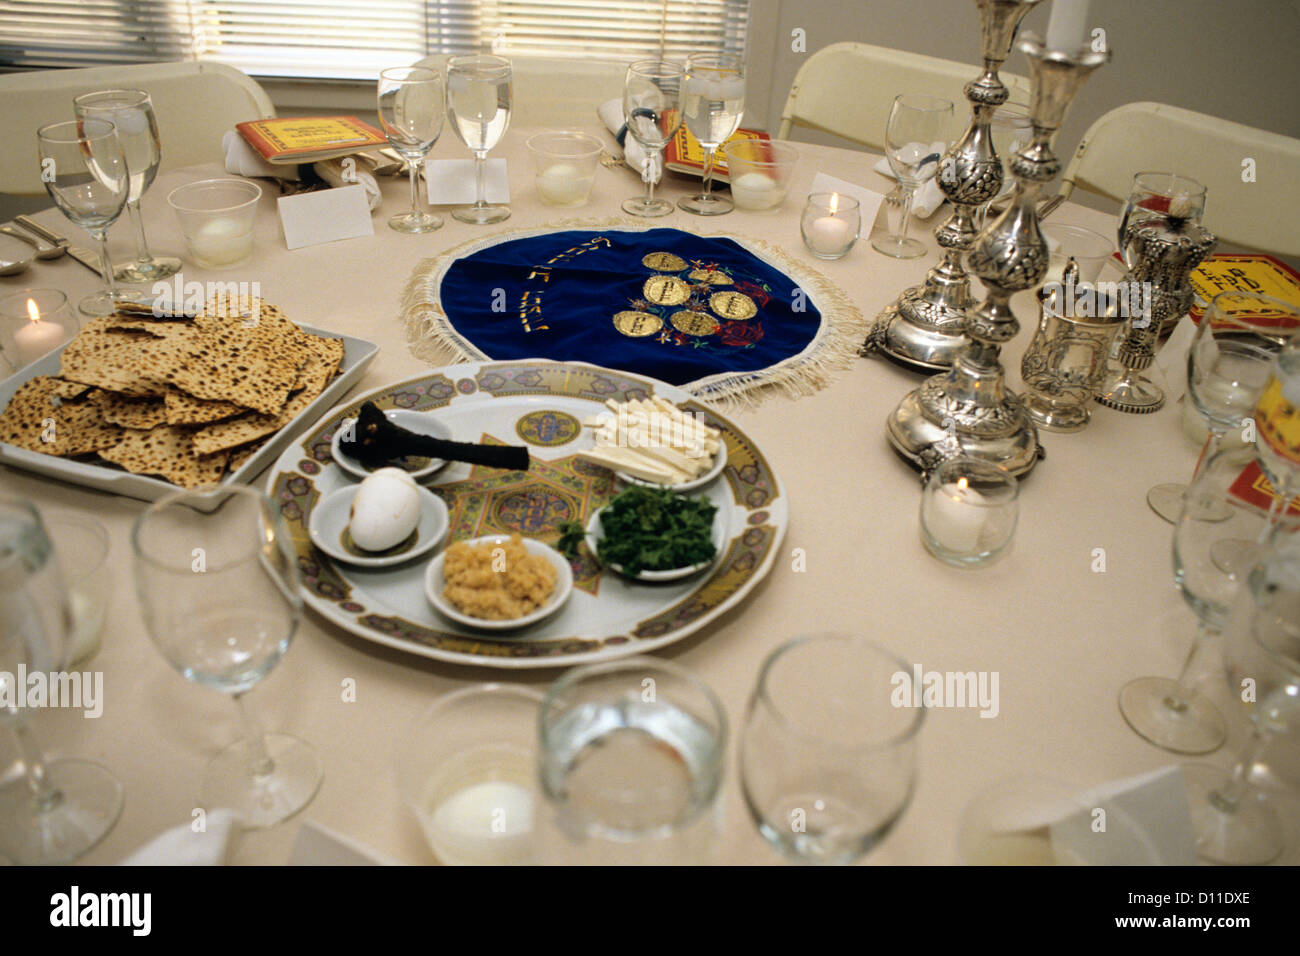 1990s TABLE SETTING FOR PASSOVER SEDER - Stock Image